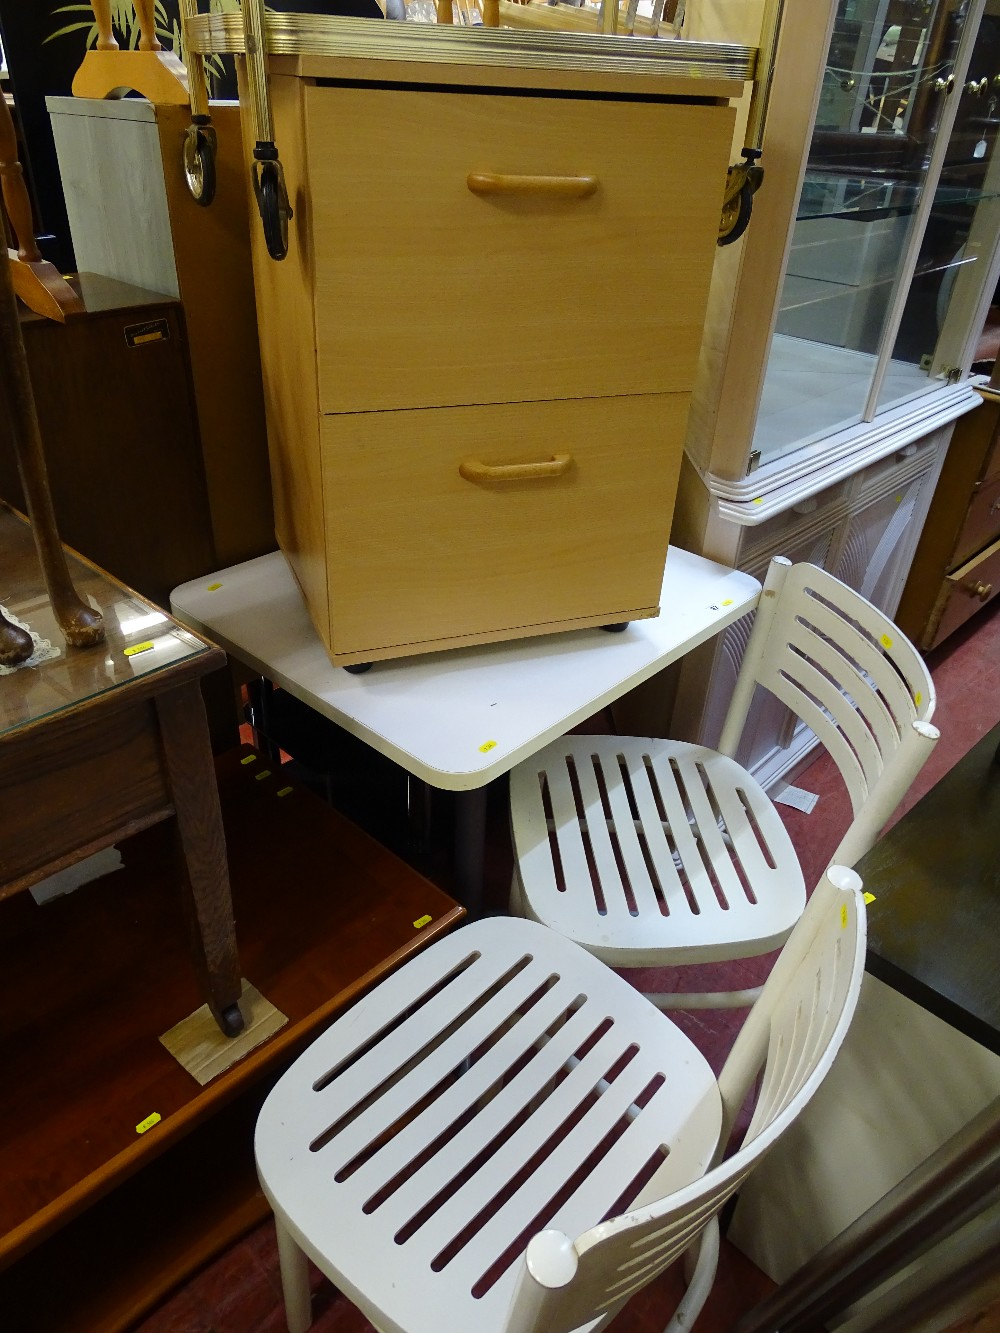 Lot 32 - Neat melamine kitchen table and two chairs (Ikea), a light wood melamine file cabinet and a brass